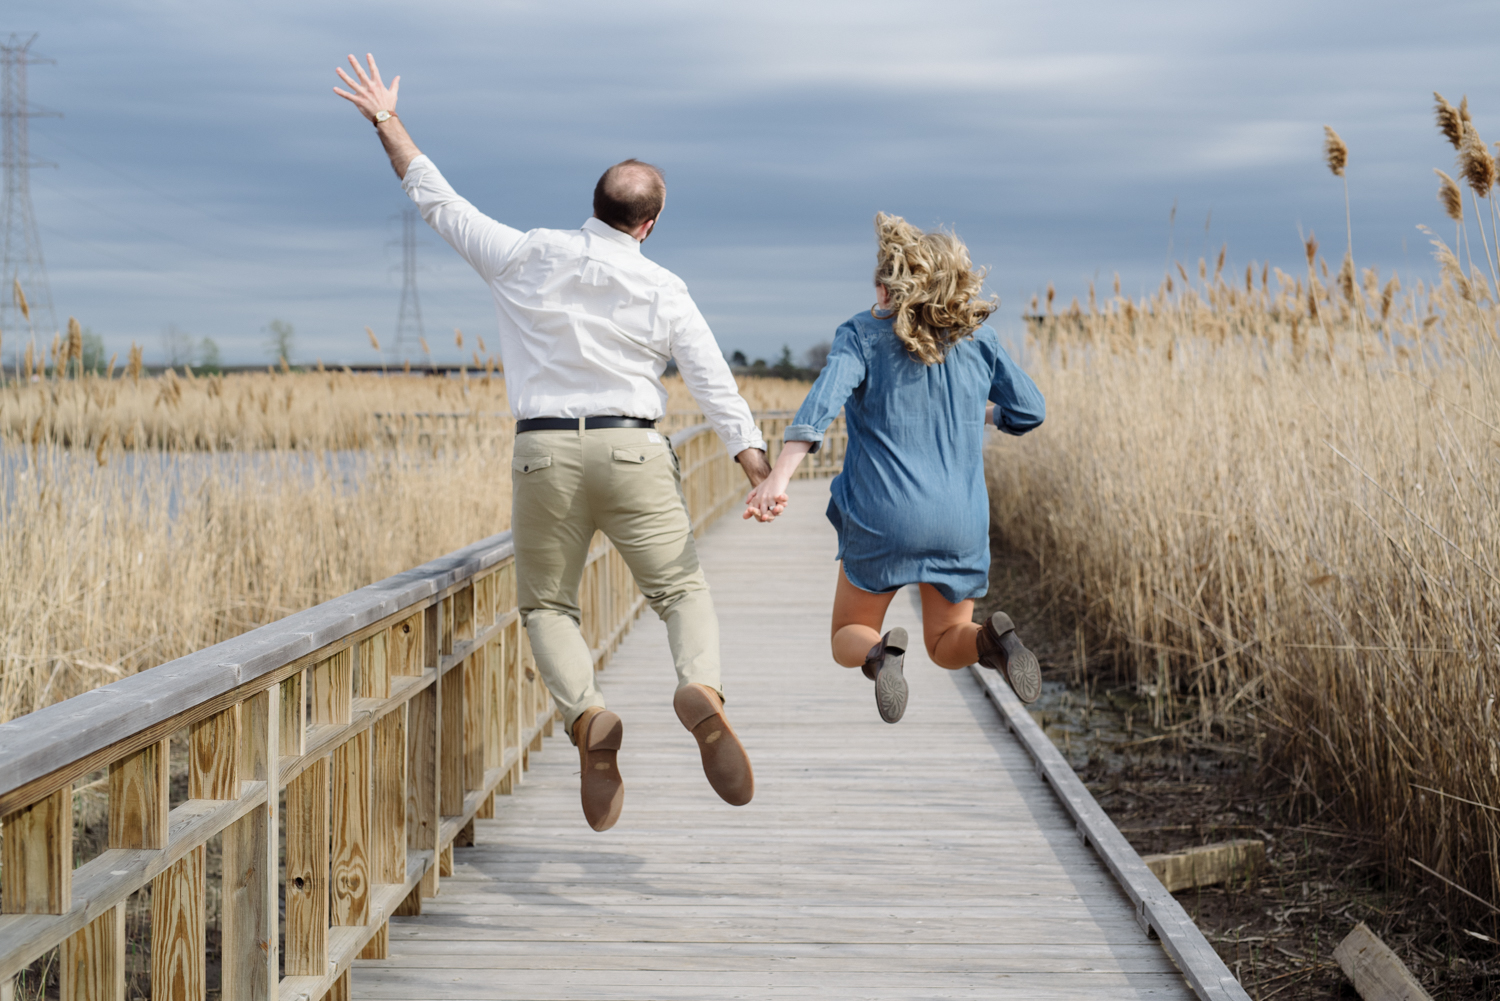 Matt+Melissa- Meadowlands Environmental Center Engagement Session- New Jersey- Olivia Christina Photo-32.JPG